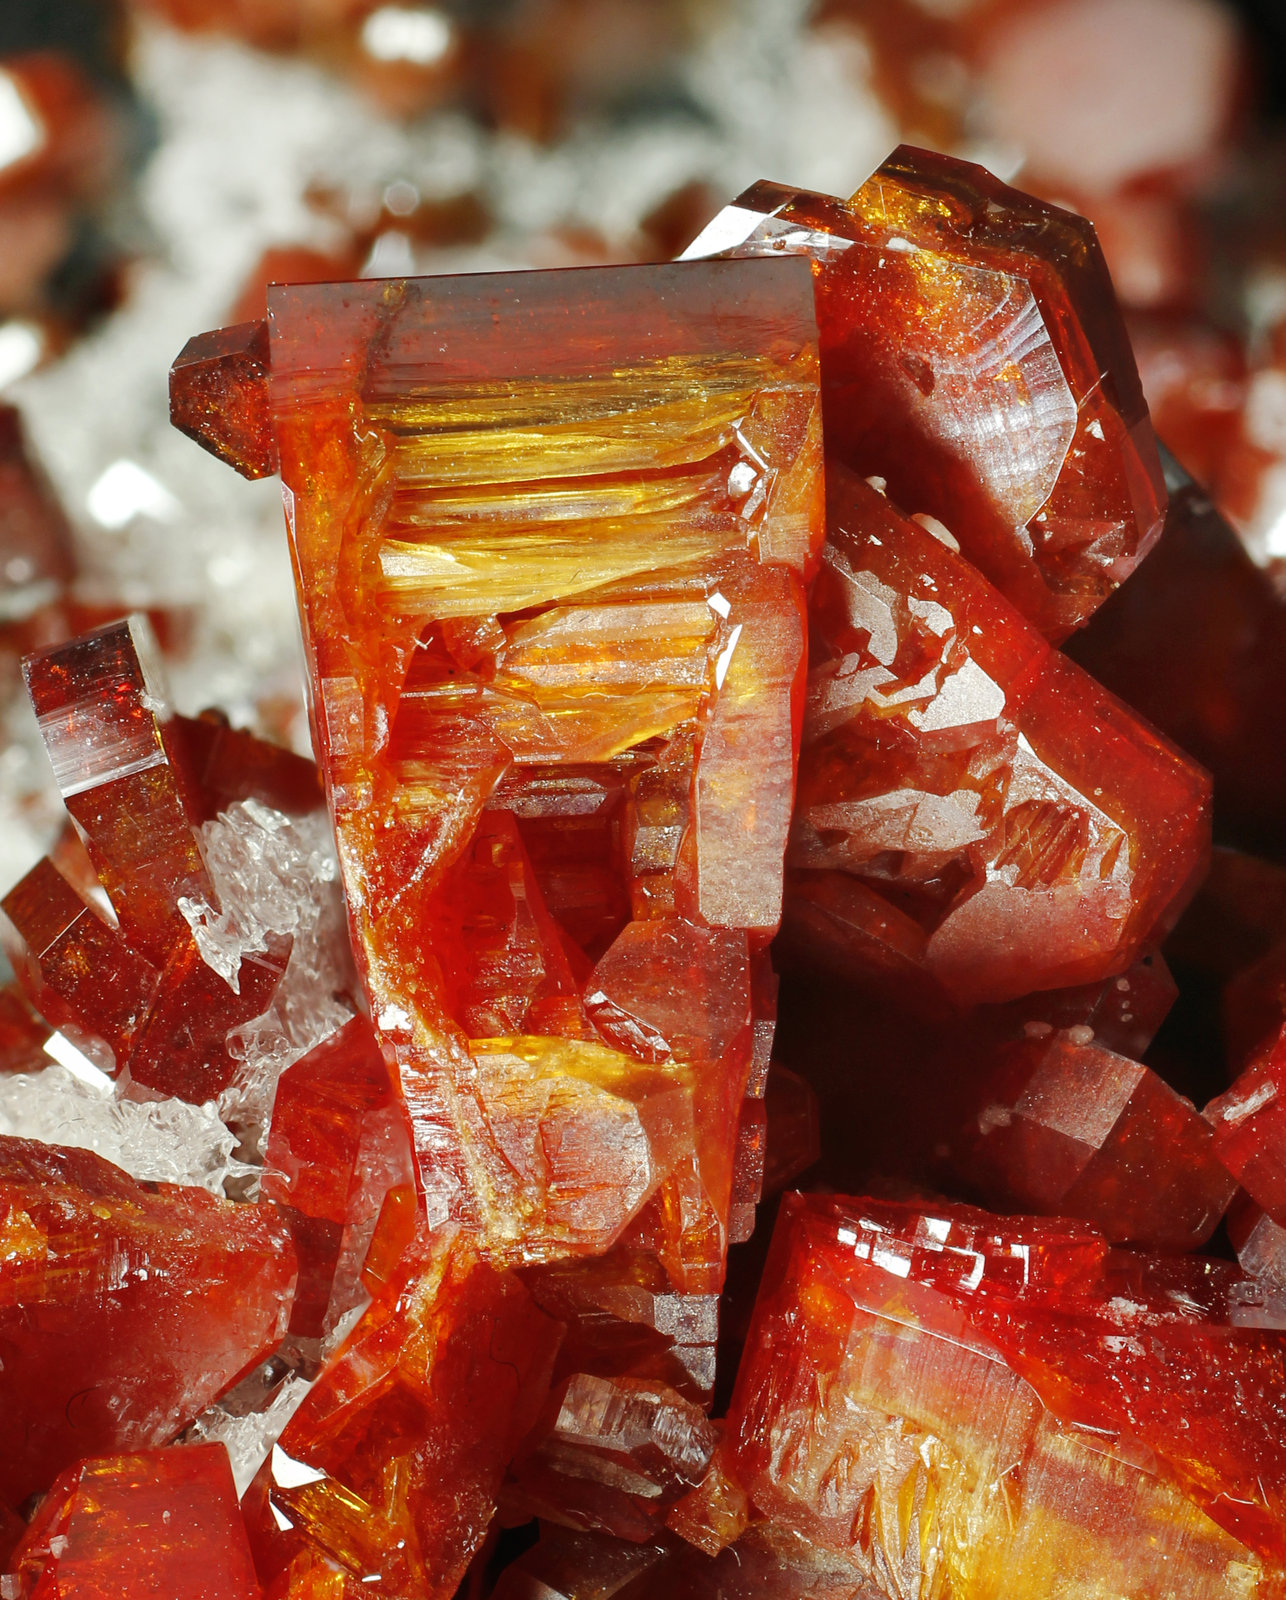 specimens/s_imagesAK1/Vanadinite-AB16AK1_0308_d2.jpg